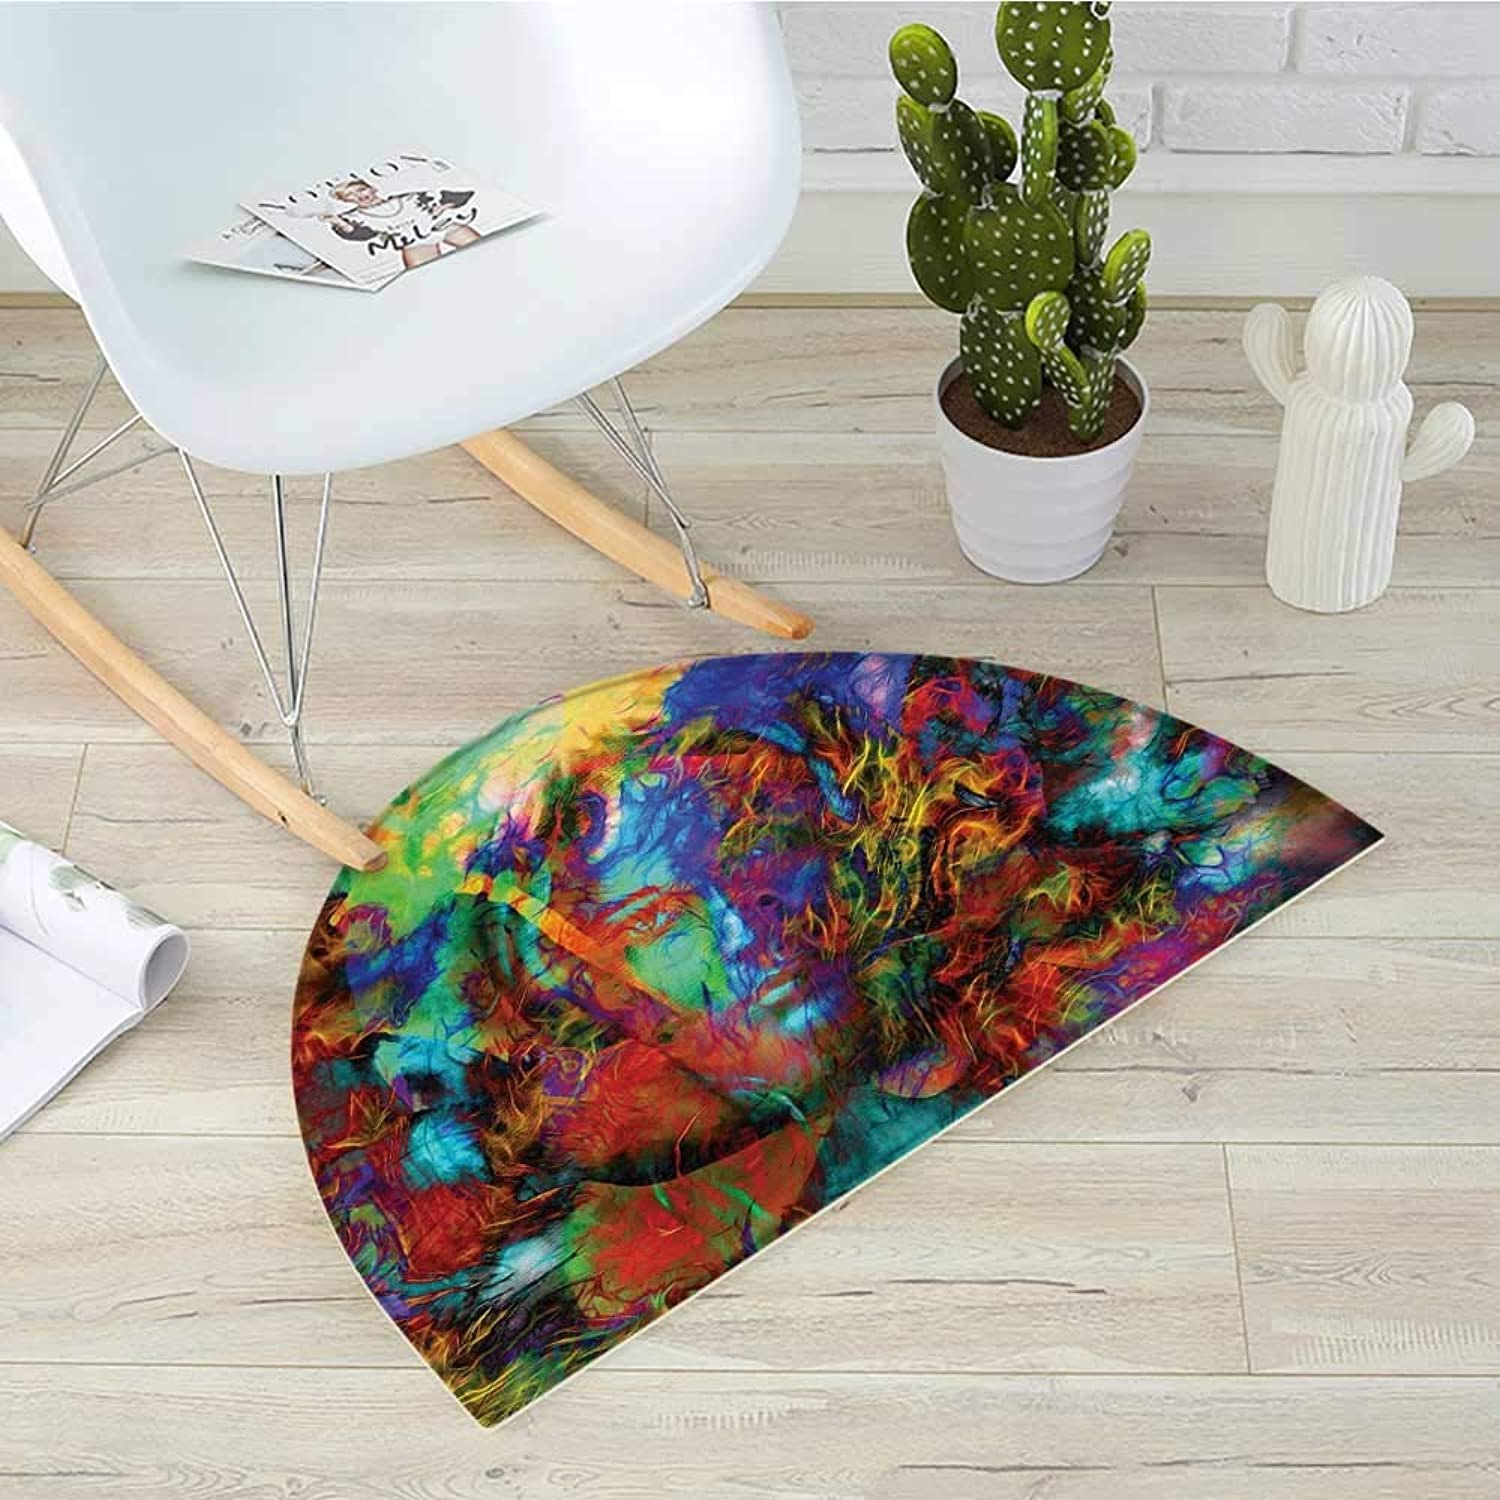 Mystic Half Round Door mats Mysterious Woman Face with Butterflies and Figures Vision Perspective Spirit Artwork Bathroom Mat H 31.5  xD 47.2  Multicolor